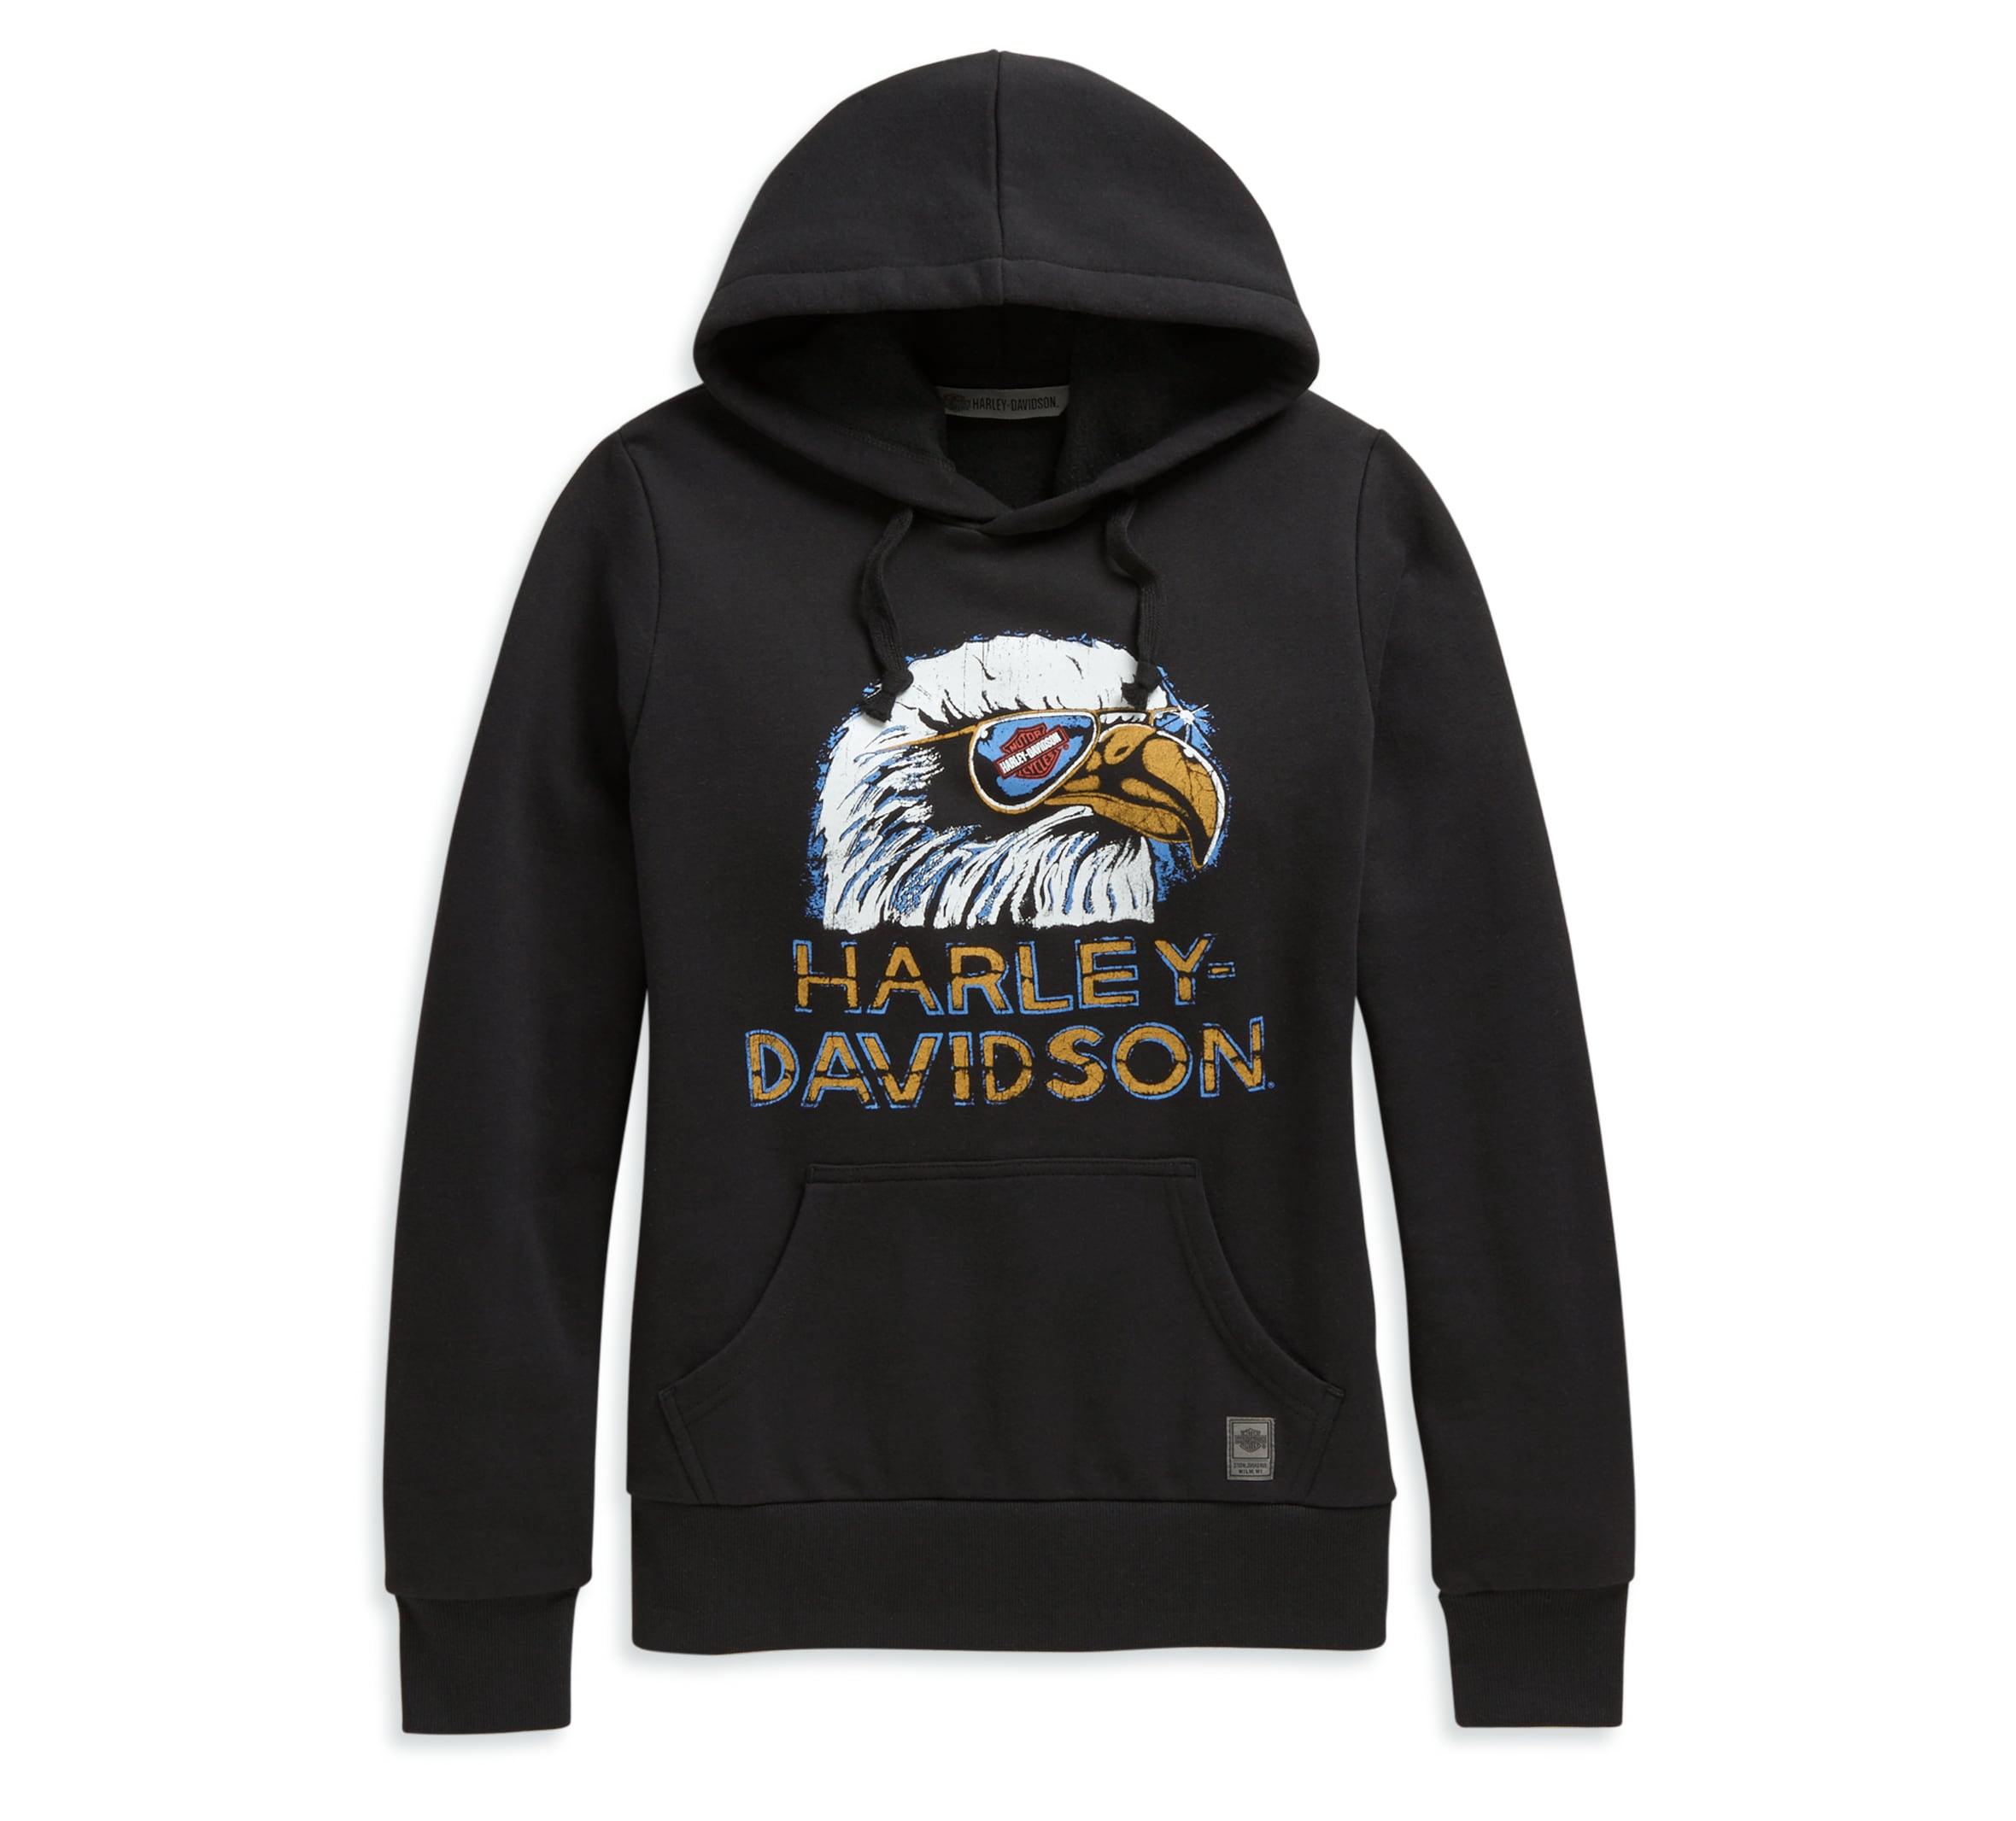 Harley-Davidson Military Mens Graphic Pullover Hooded Sweatshirt Epic Military Collage